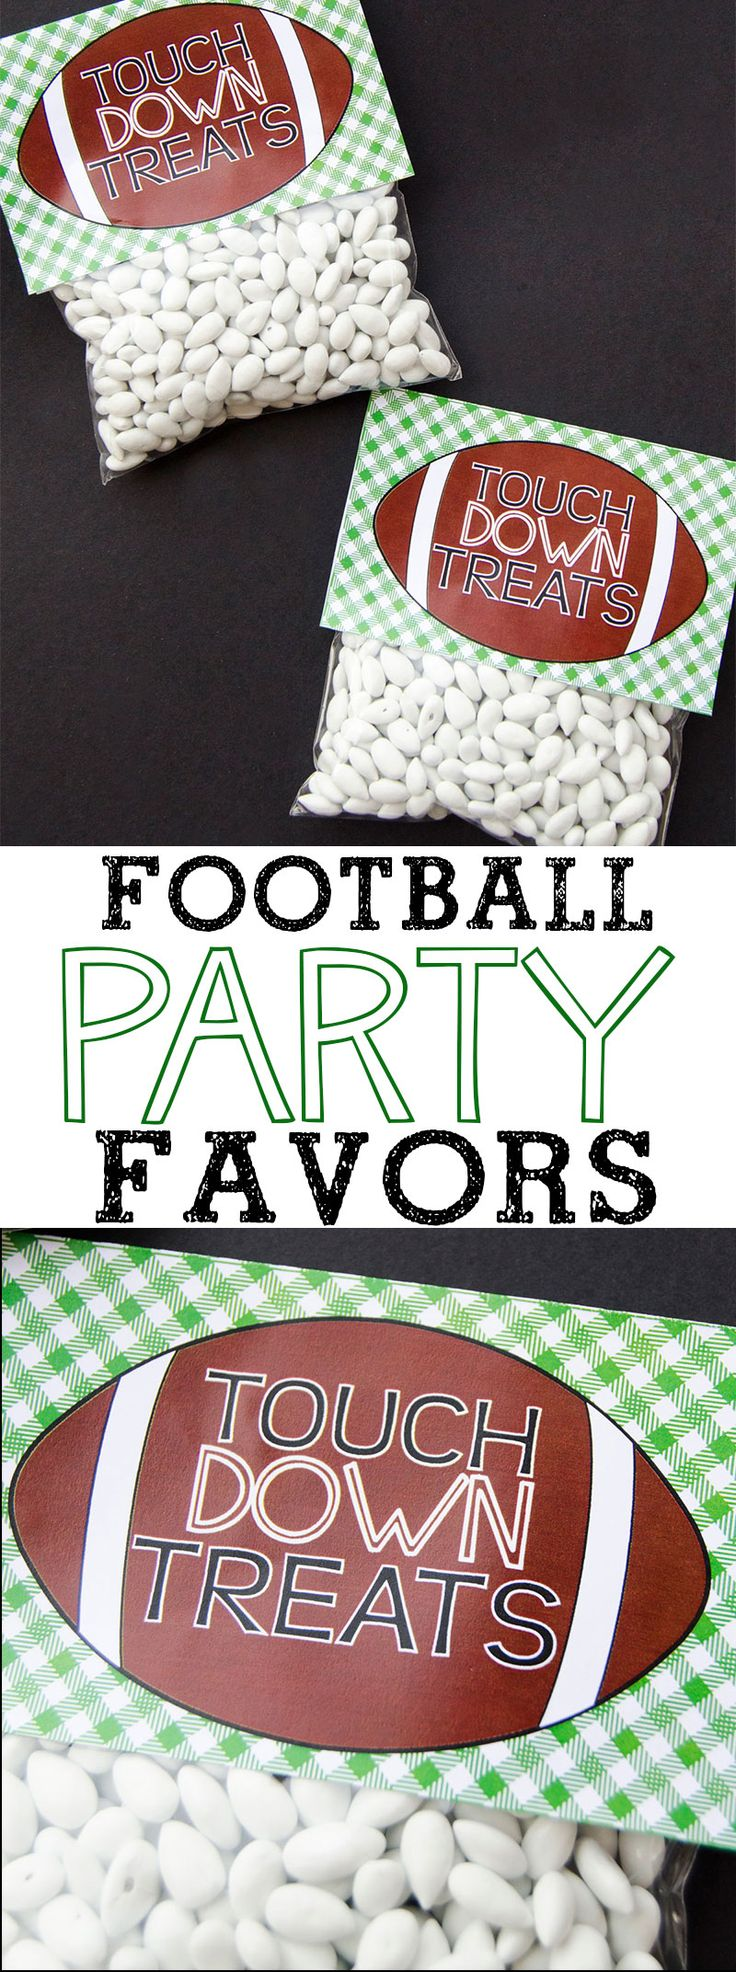 450 best Football & Superbowl Party Ideas! images on Pinterest ...